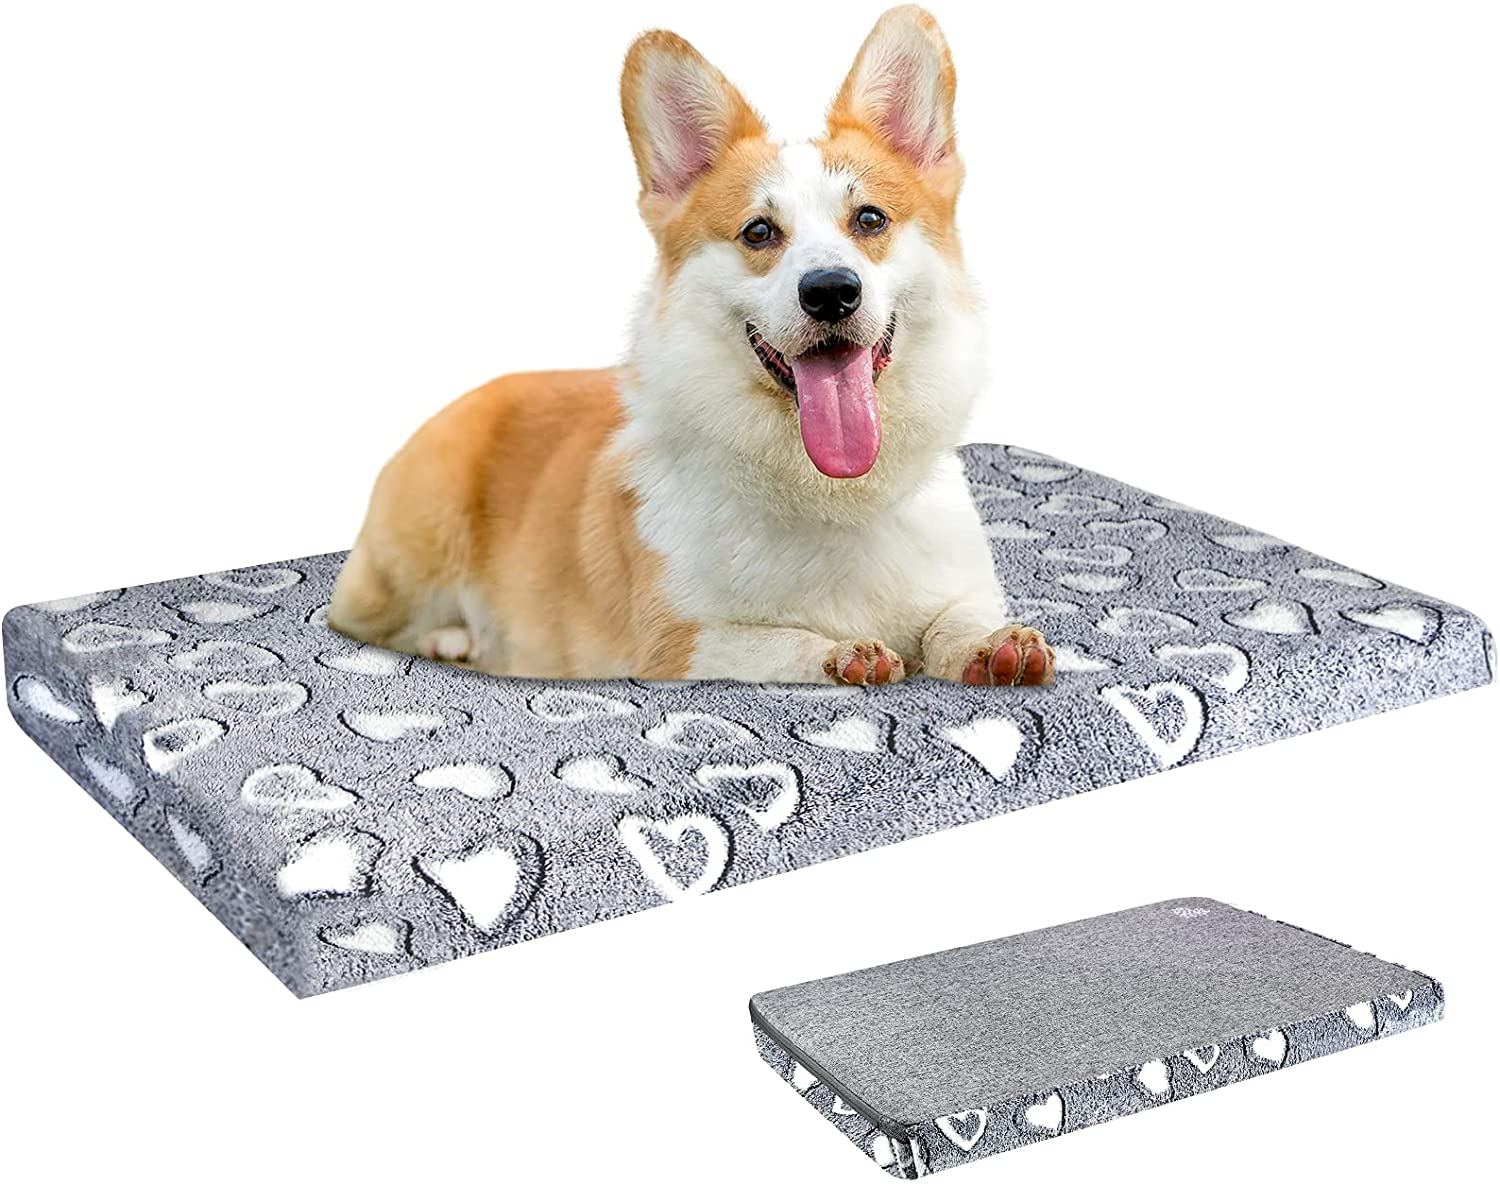 VANKEANDog Bed Ranking integrated 1st place Mat Reversible Ranking TOP17 Pet Stylish Cool Soft